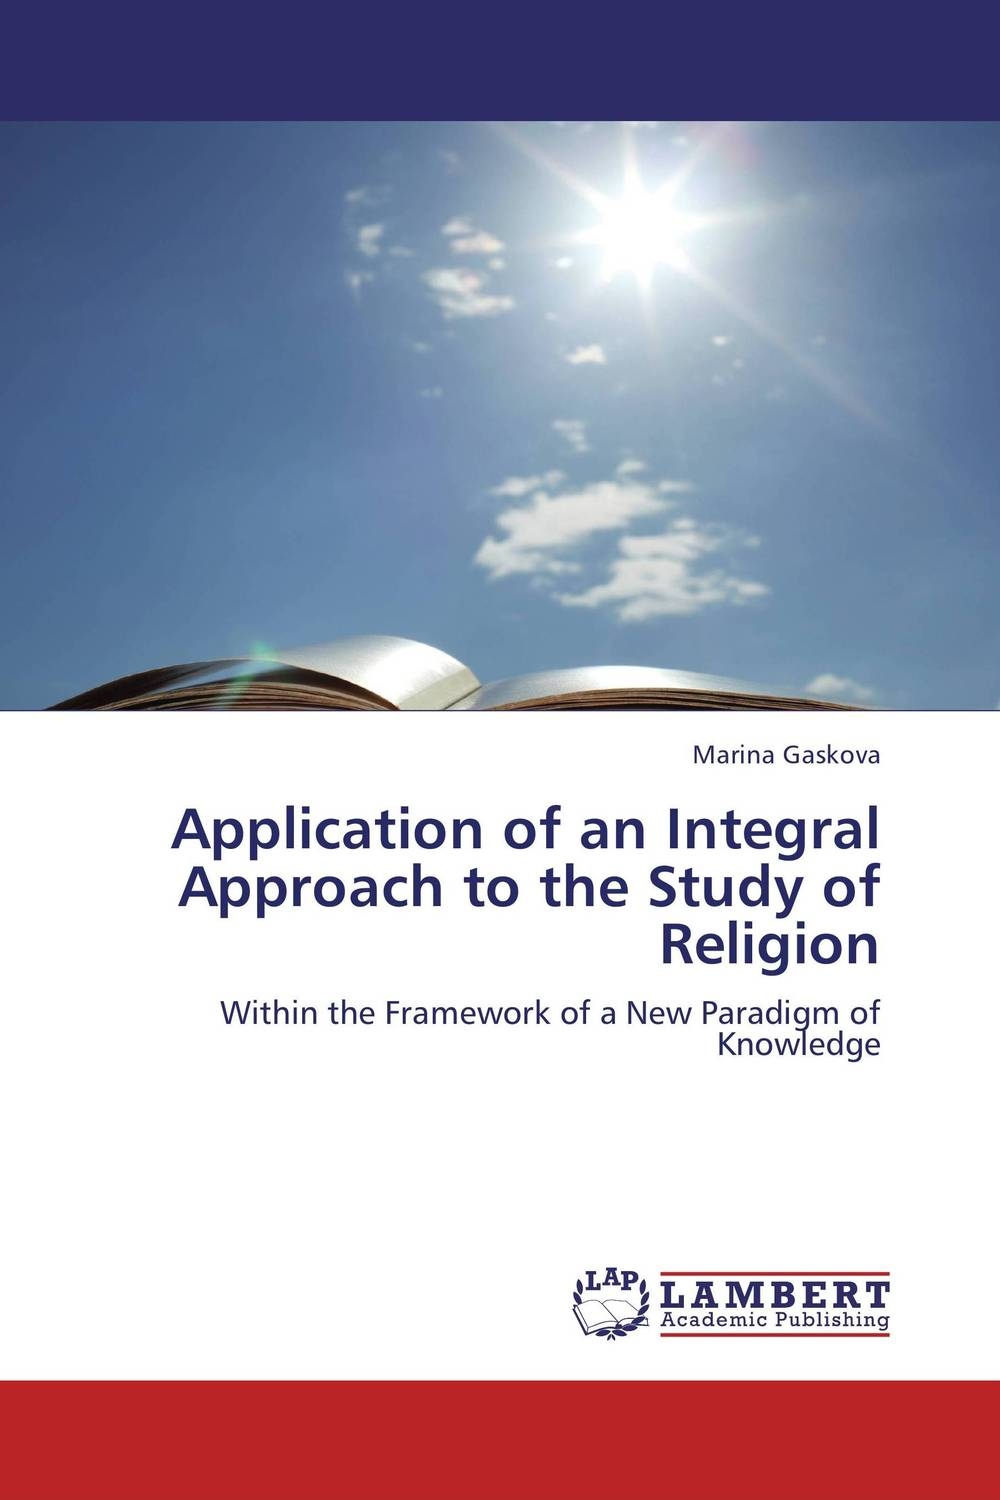 Application of an Integral Approach to the Study of Religion